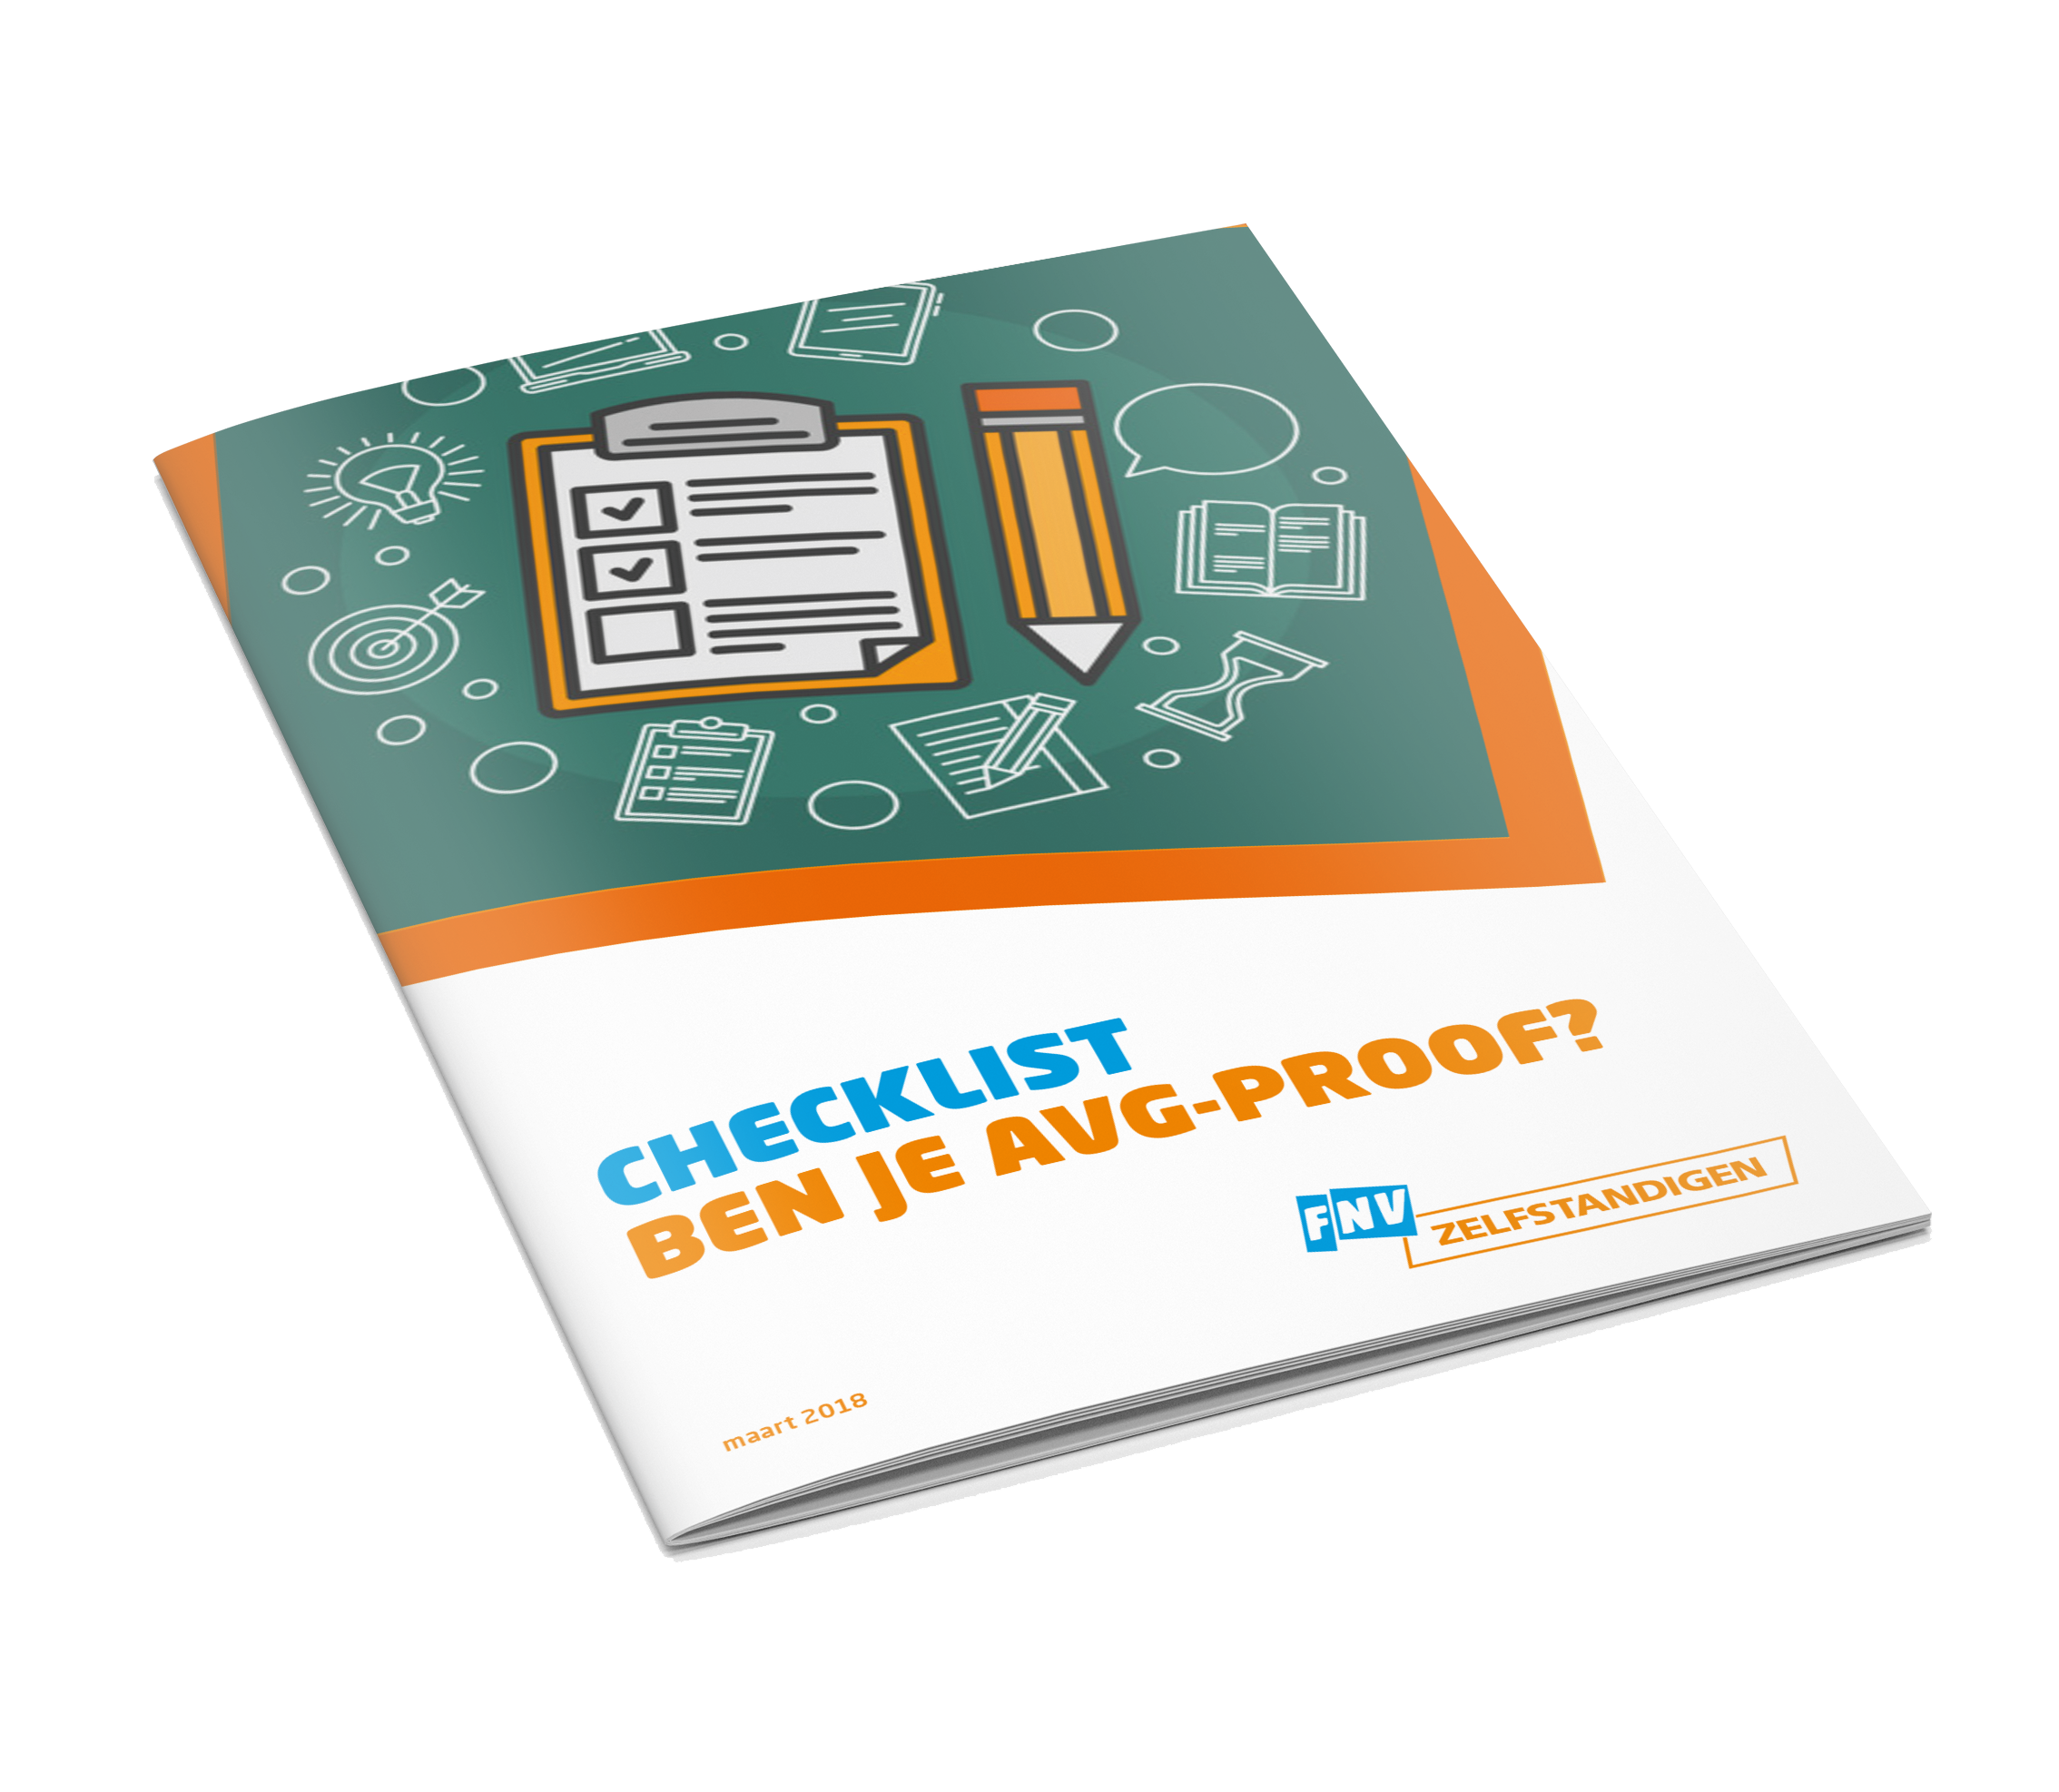 Checklist-ben-je-AVG-proof